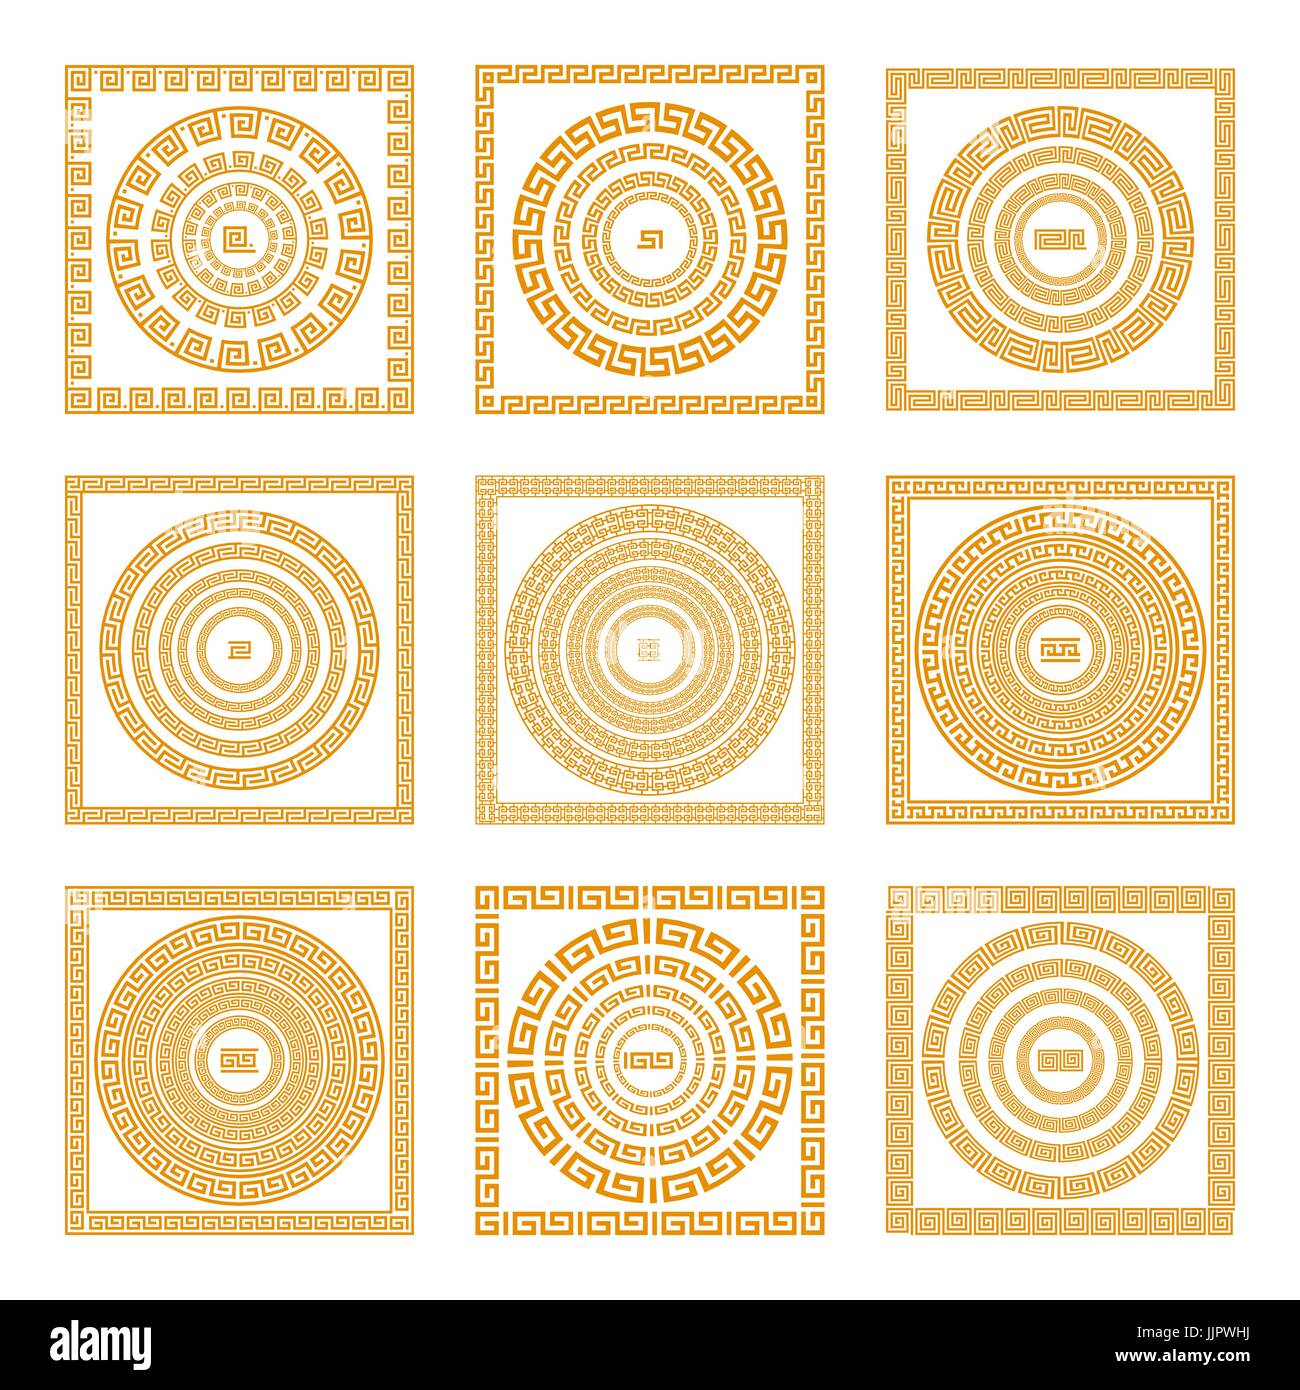 25dfcfe906cf8 Set collections of old greek ornaments. Orange old style borders on the  dark background. Ethnic patterns. Vector illustrations. art